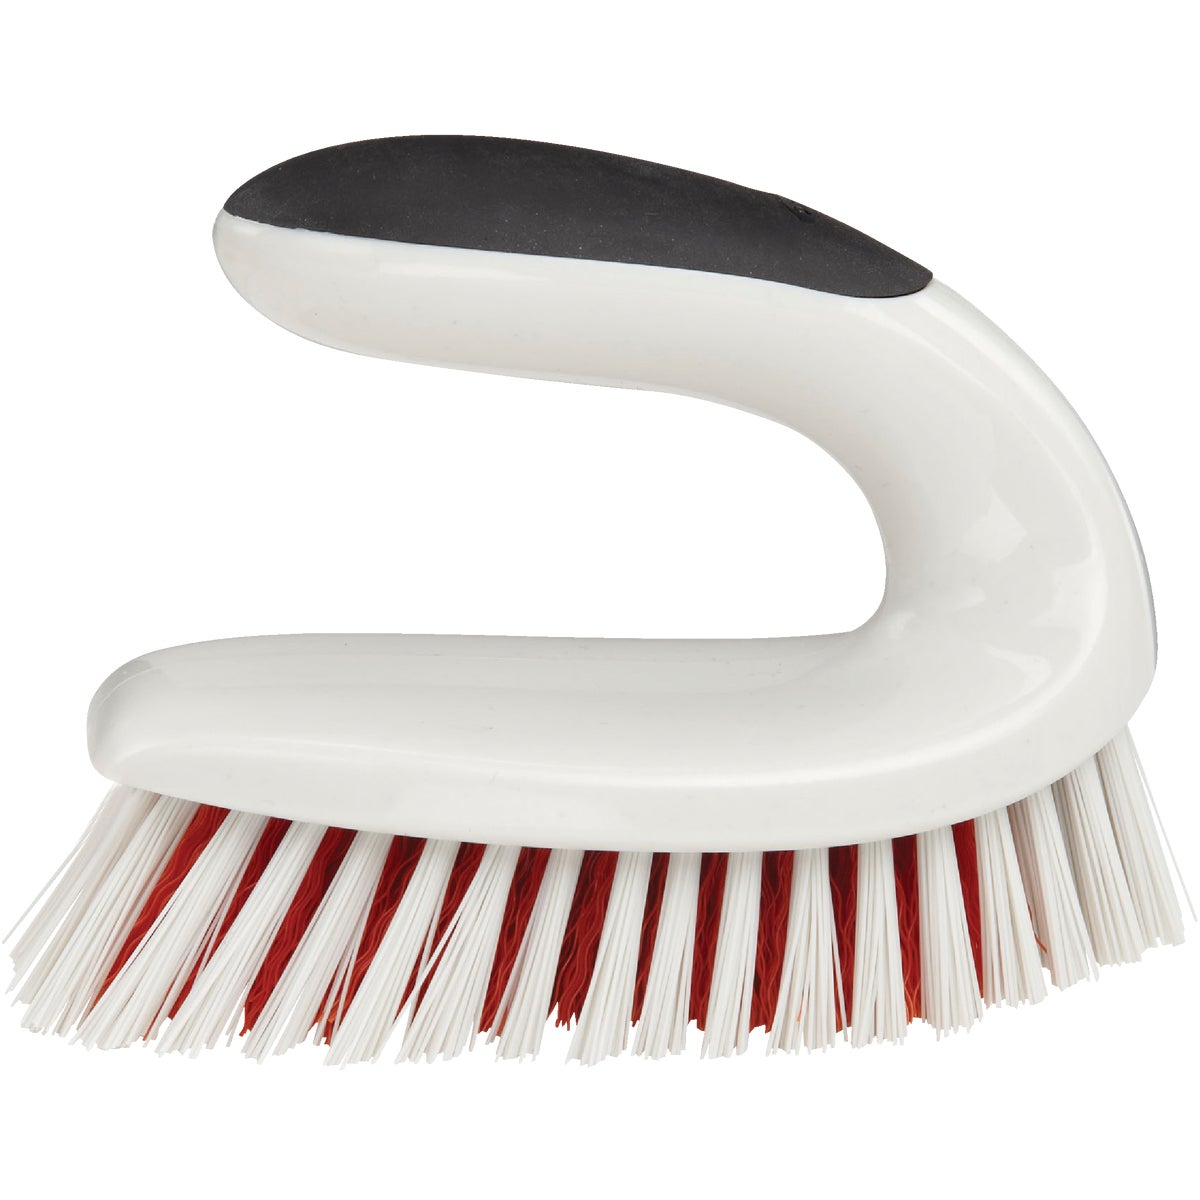 SCRUB BRUSH - 33881 by Oxo International